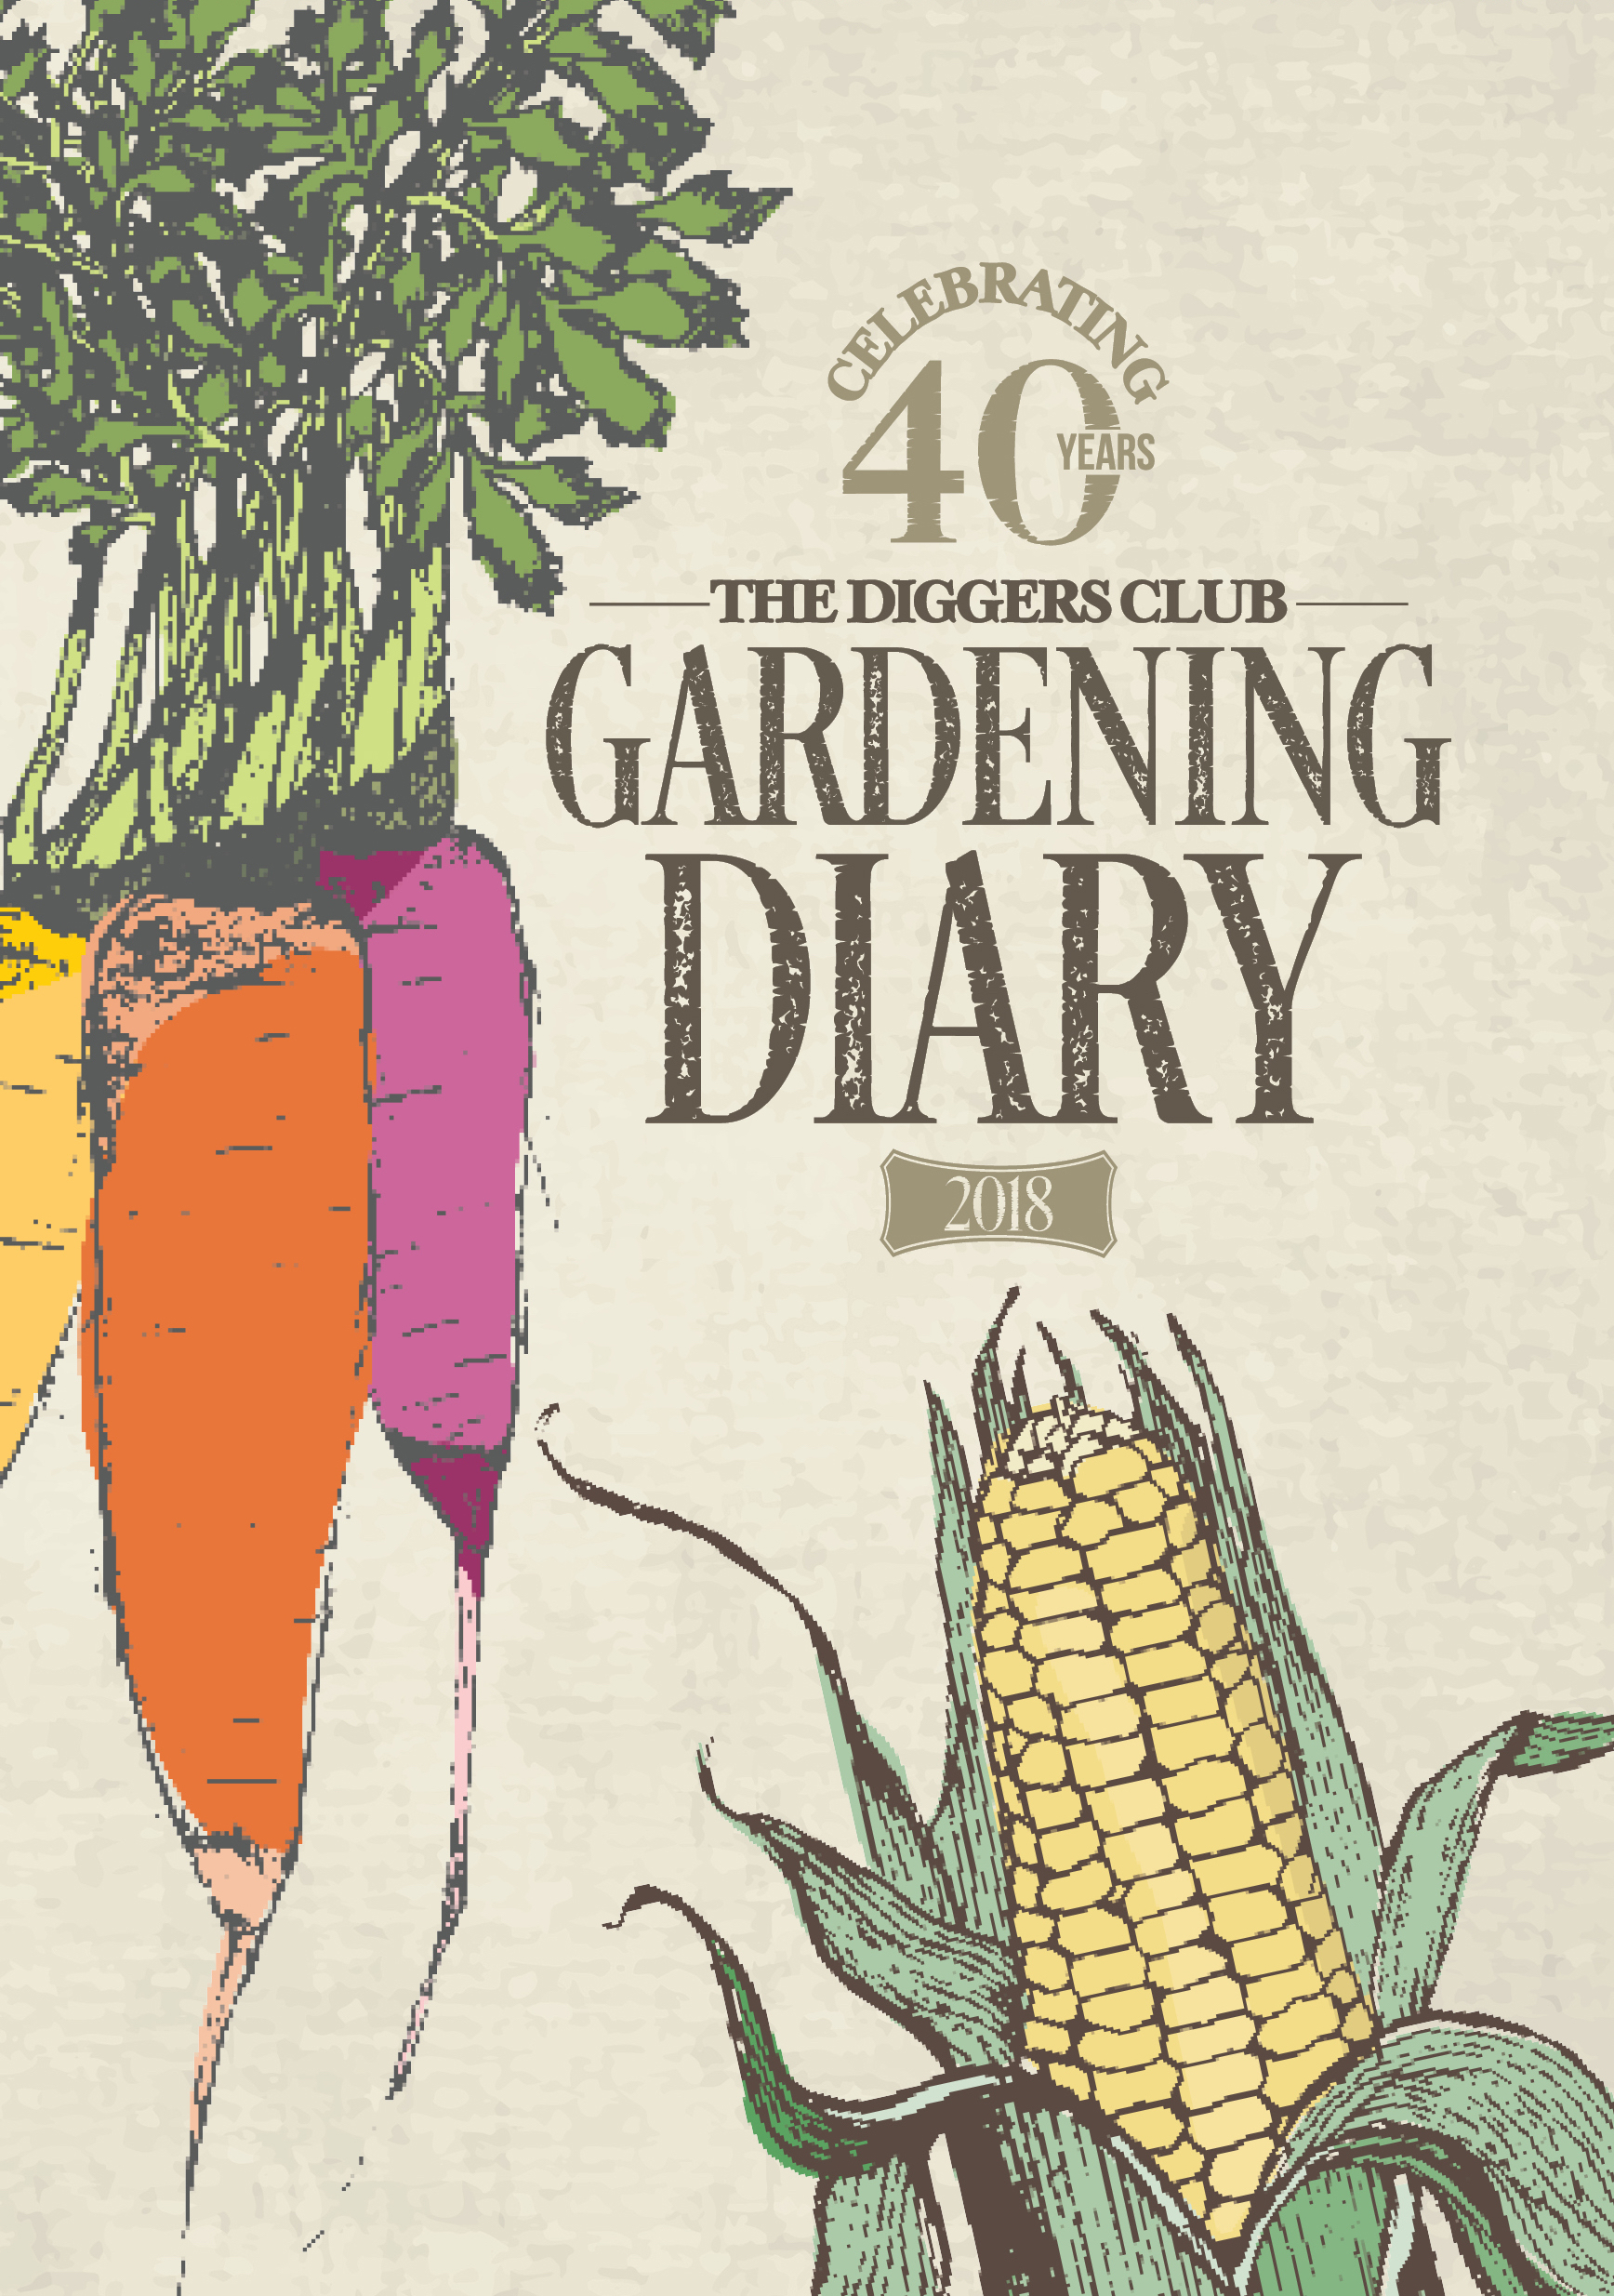 The diggers club gardening diary 2018 newsouth books for Garden club book by blackbird designs